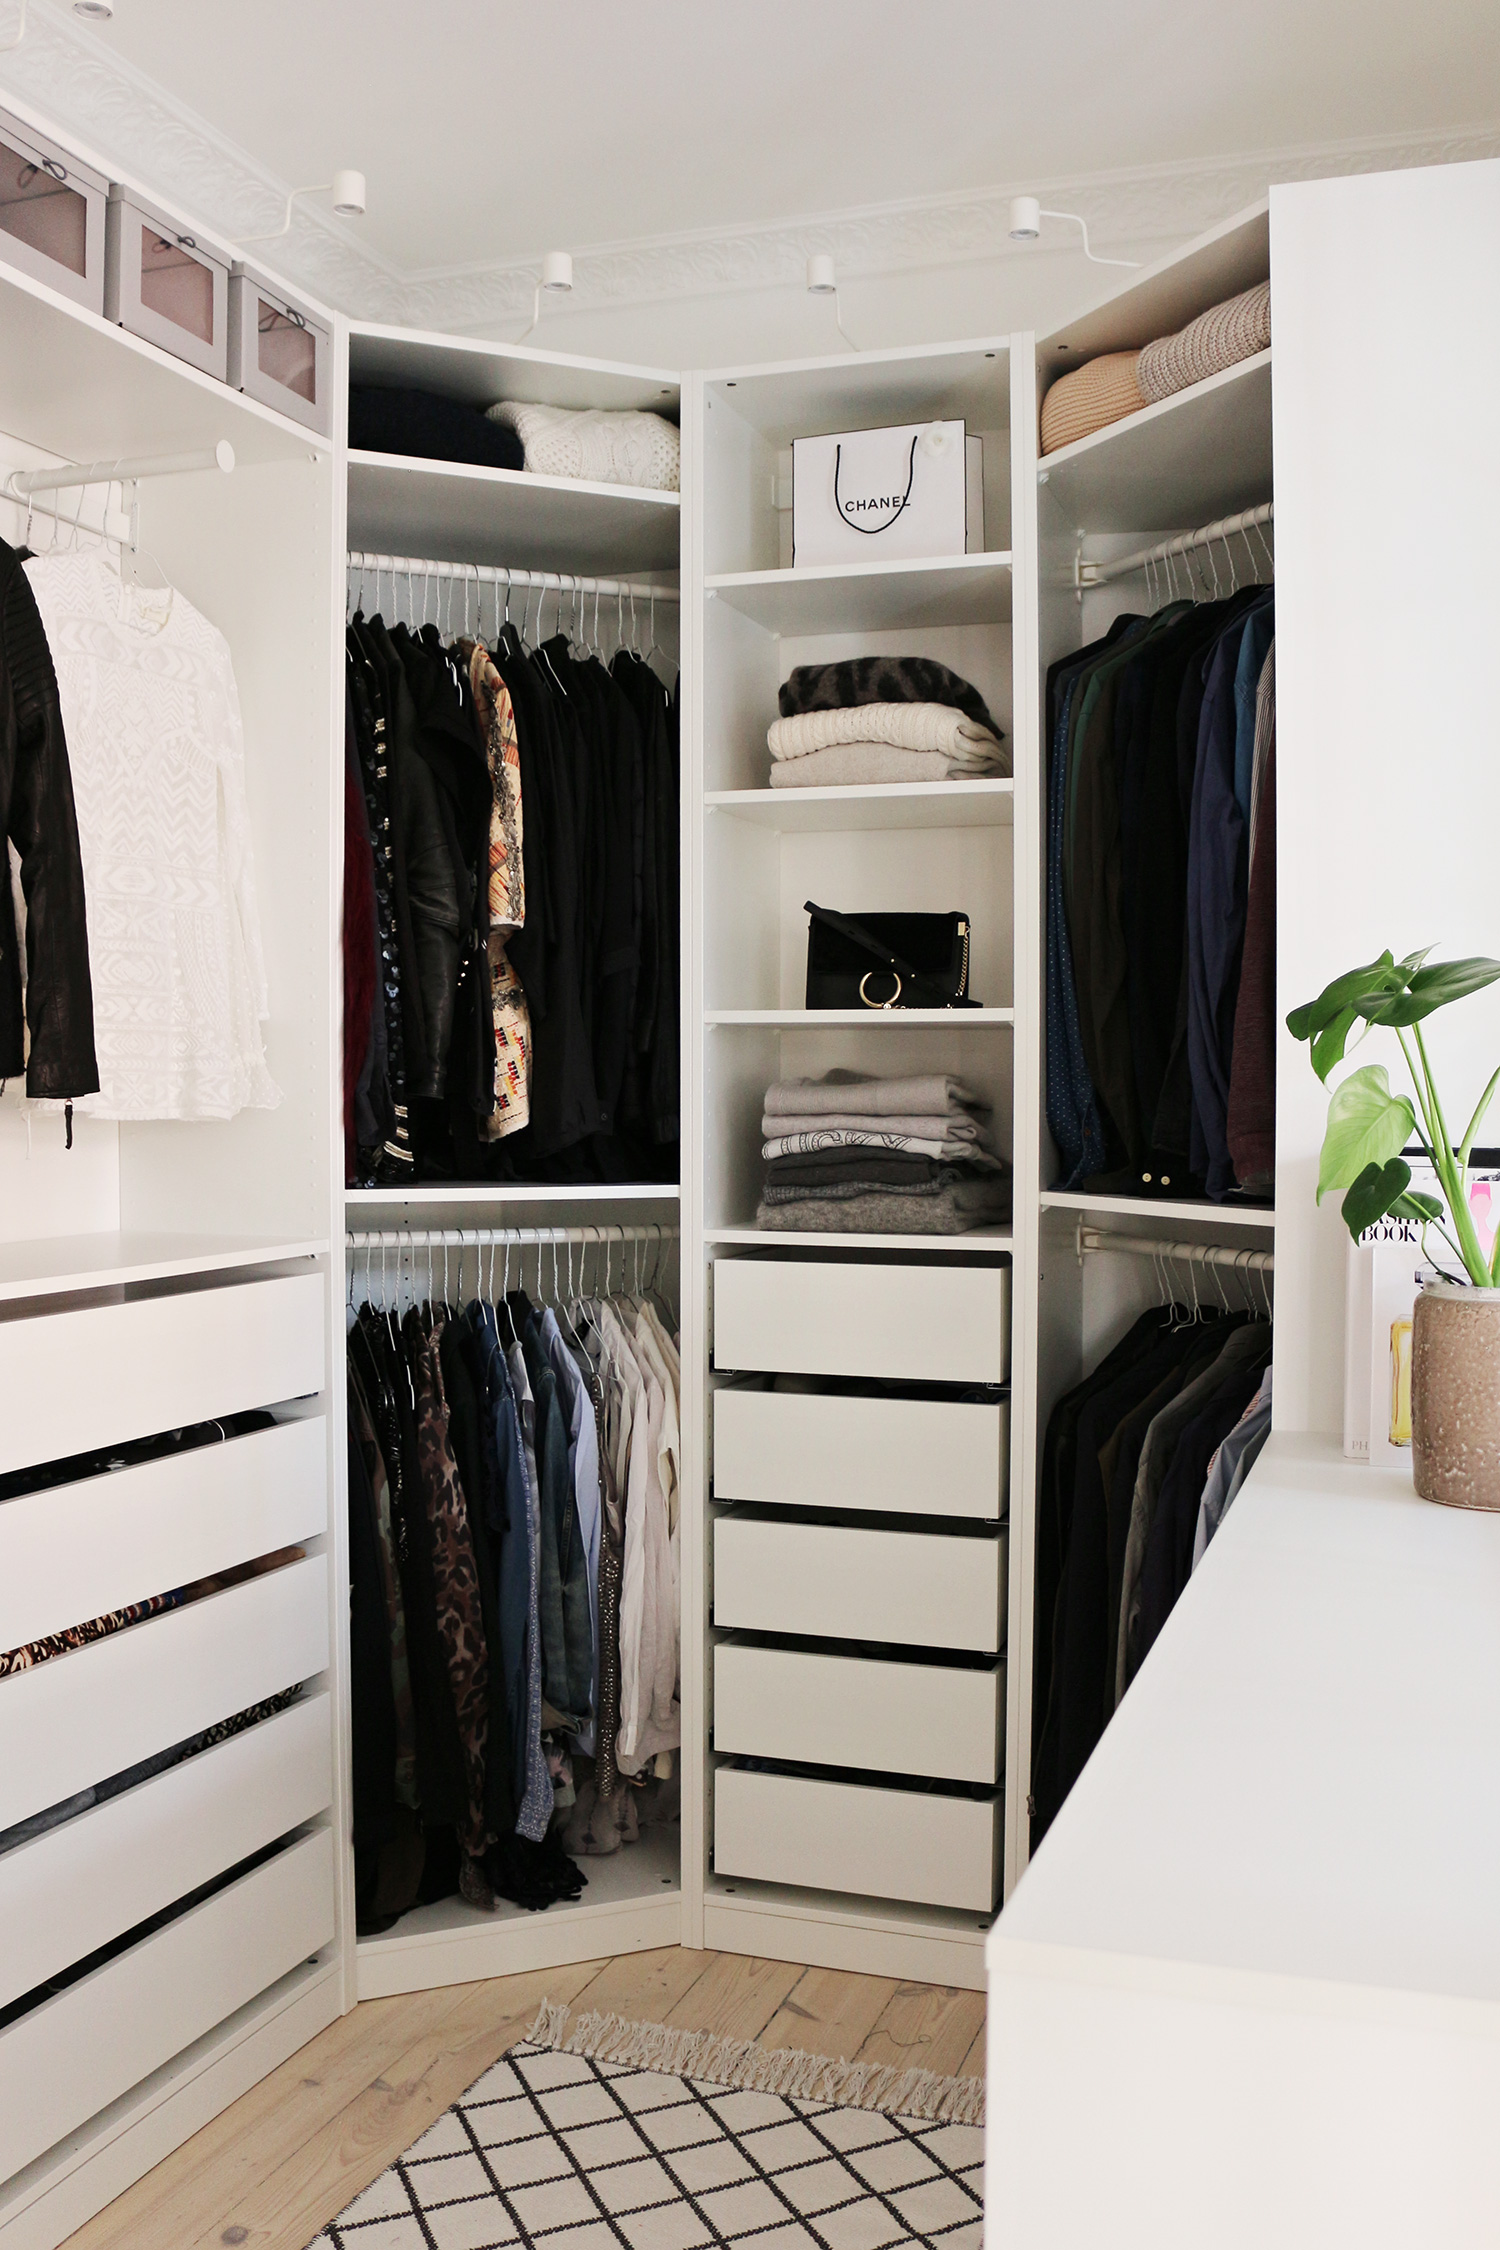 Our walk in closet is done christina dueholm - Mobili ikea pax guardaroba ...